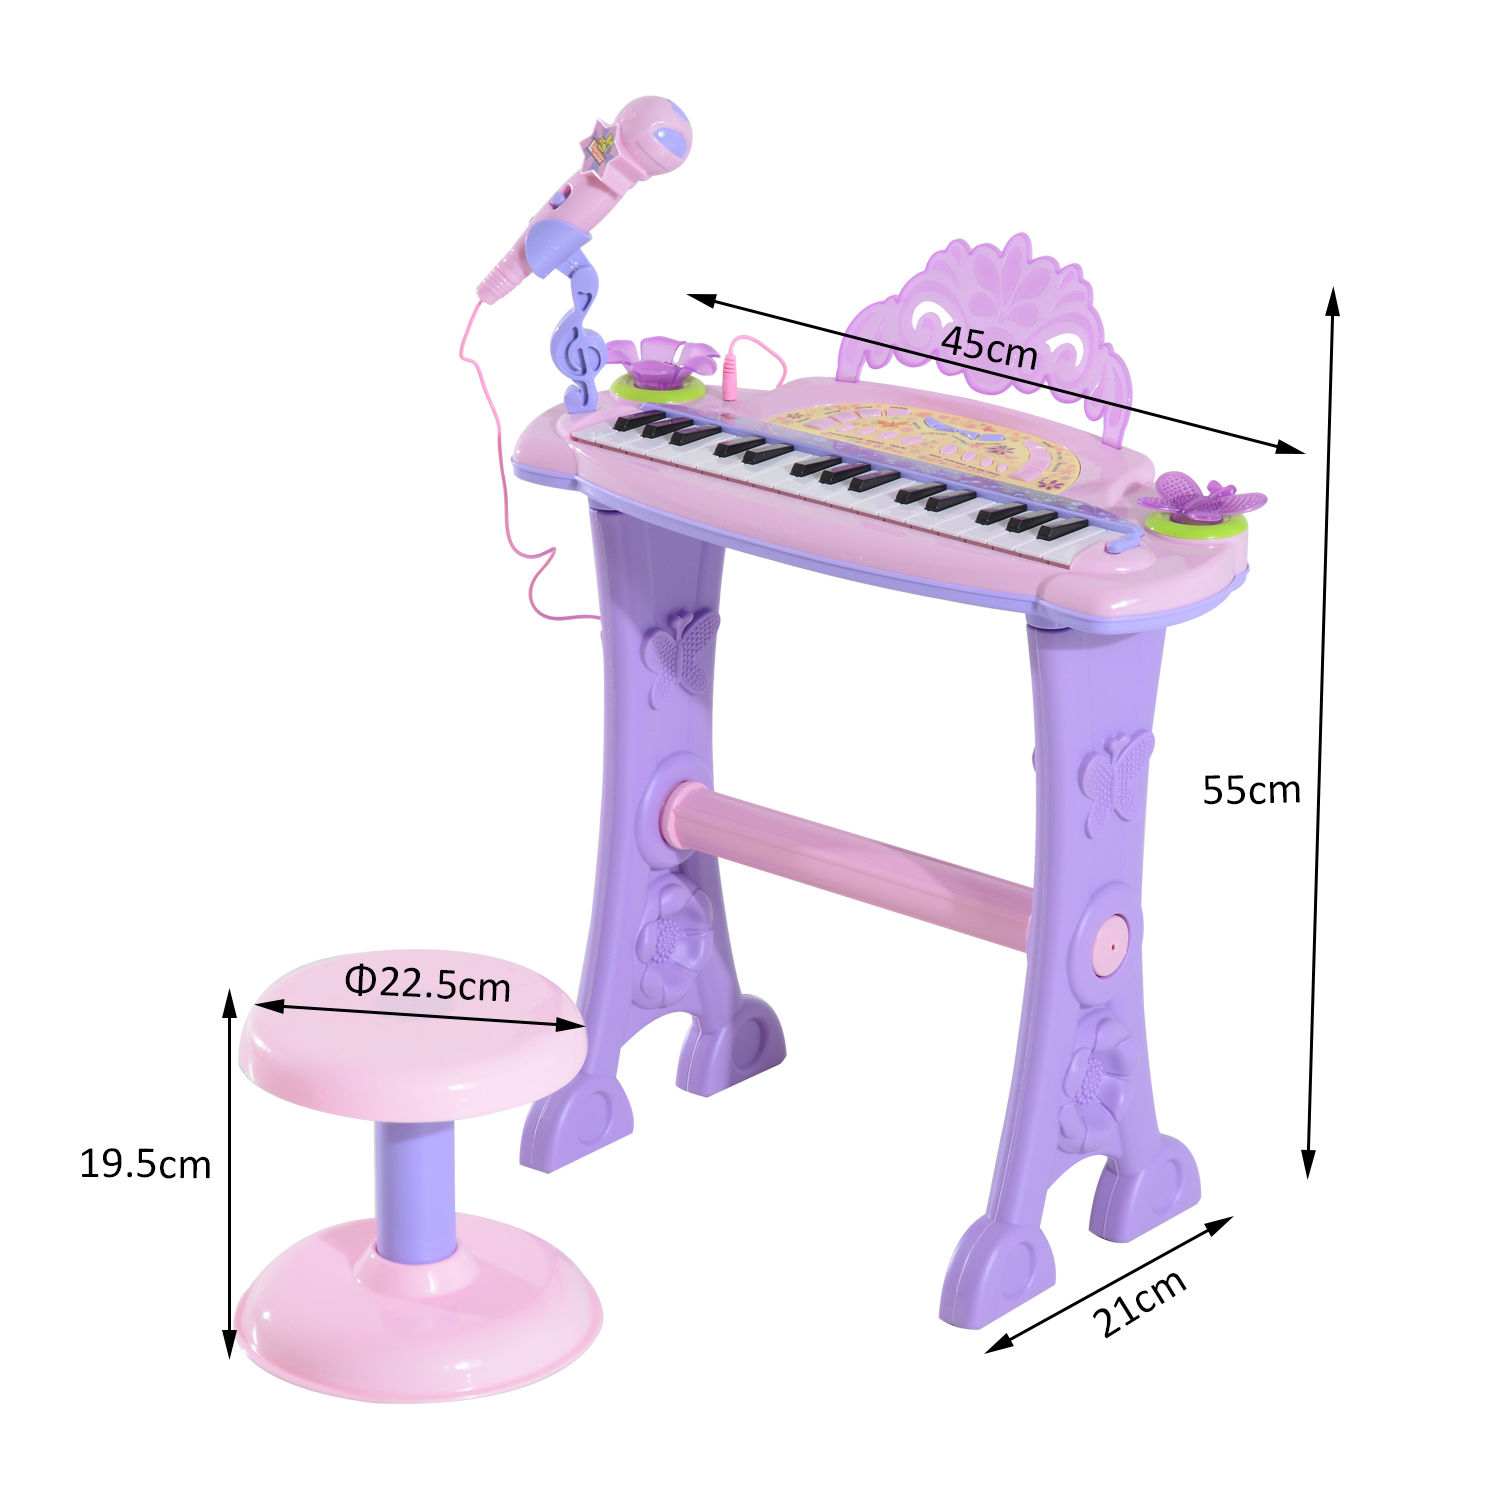 37-32-Key-Kids-Electronic-Keyboard-Mini-Grand-Piano-Stool-Microphone-Musical-Toy thumbnail 37